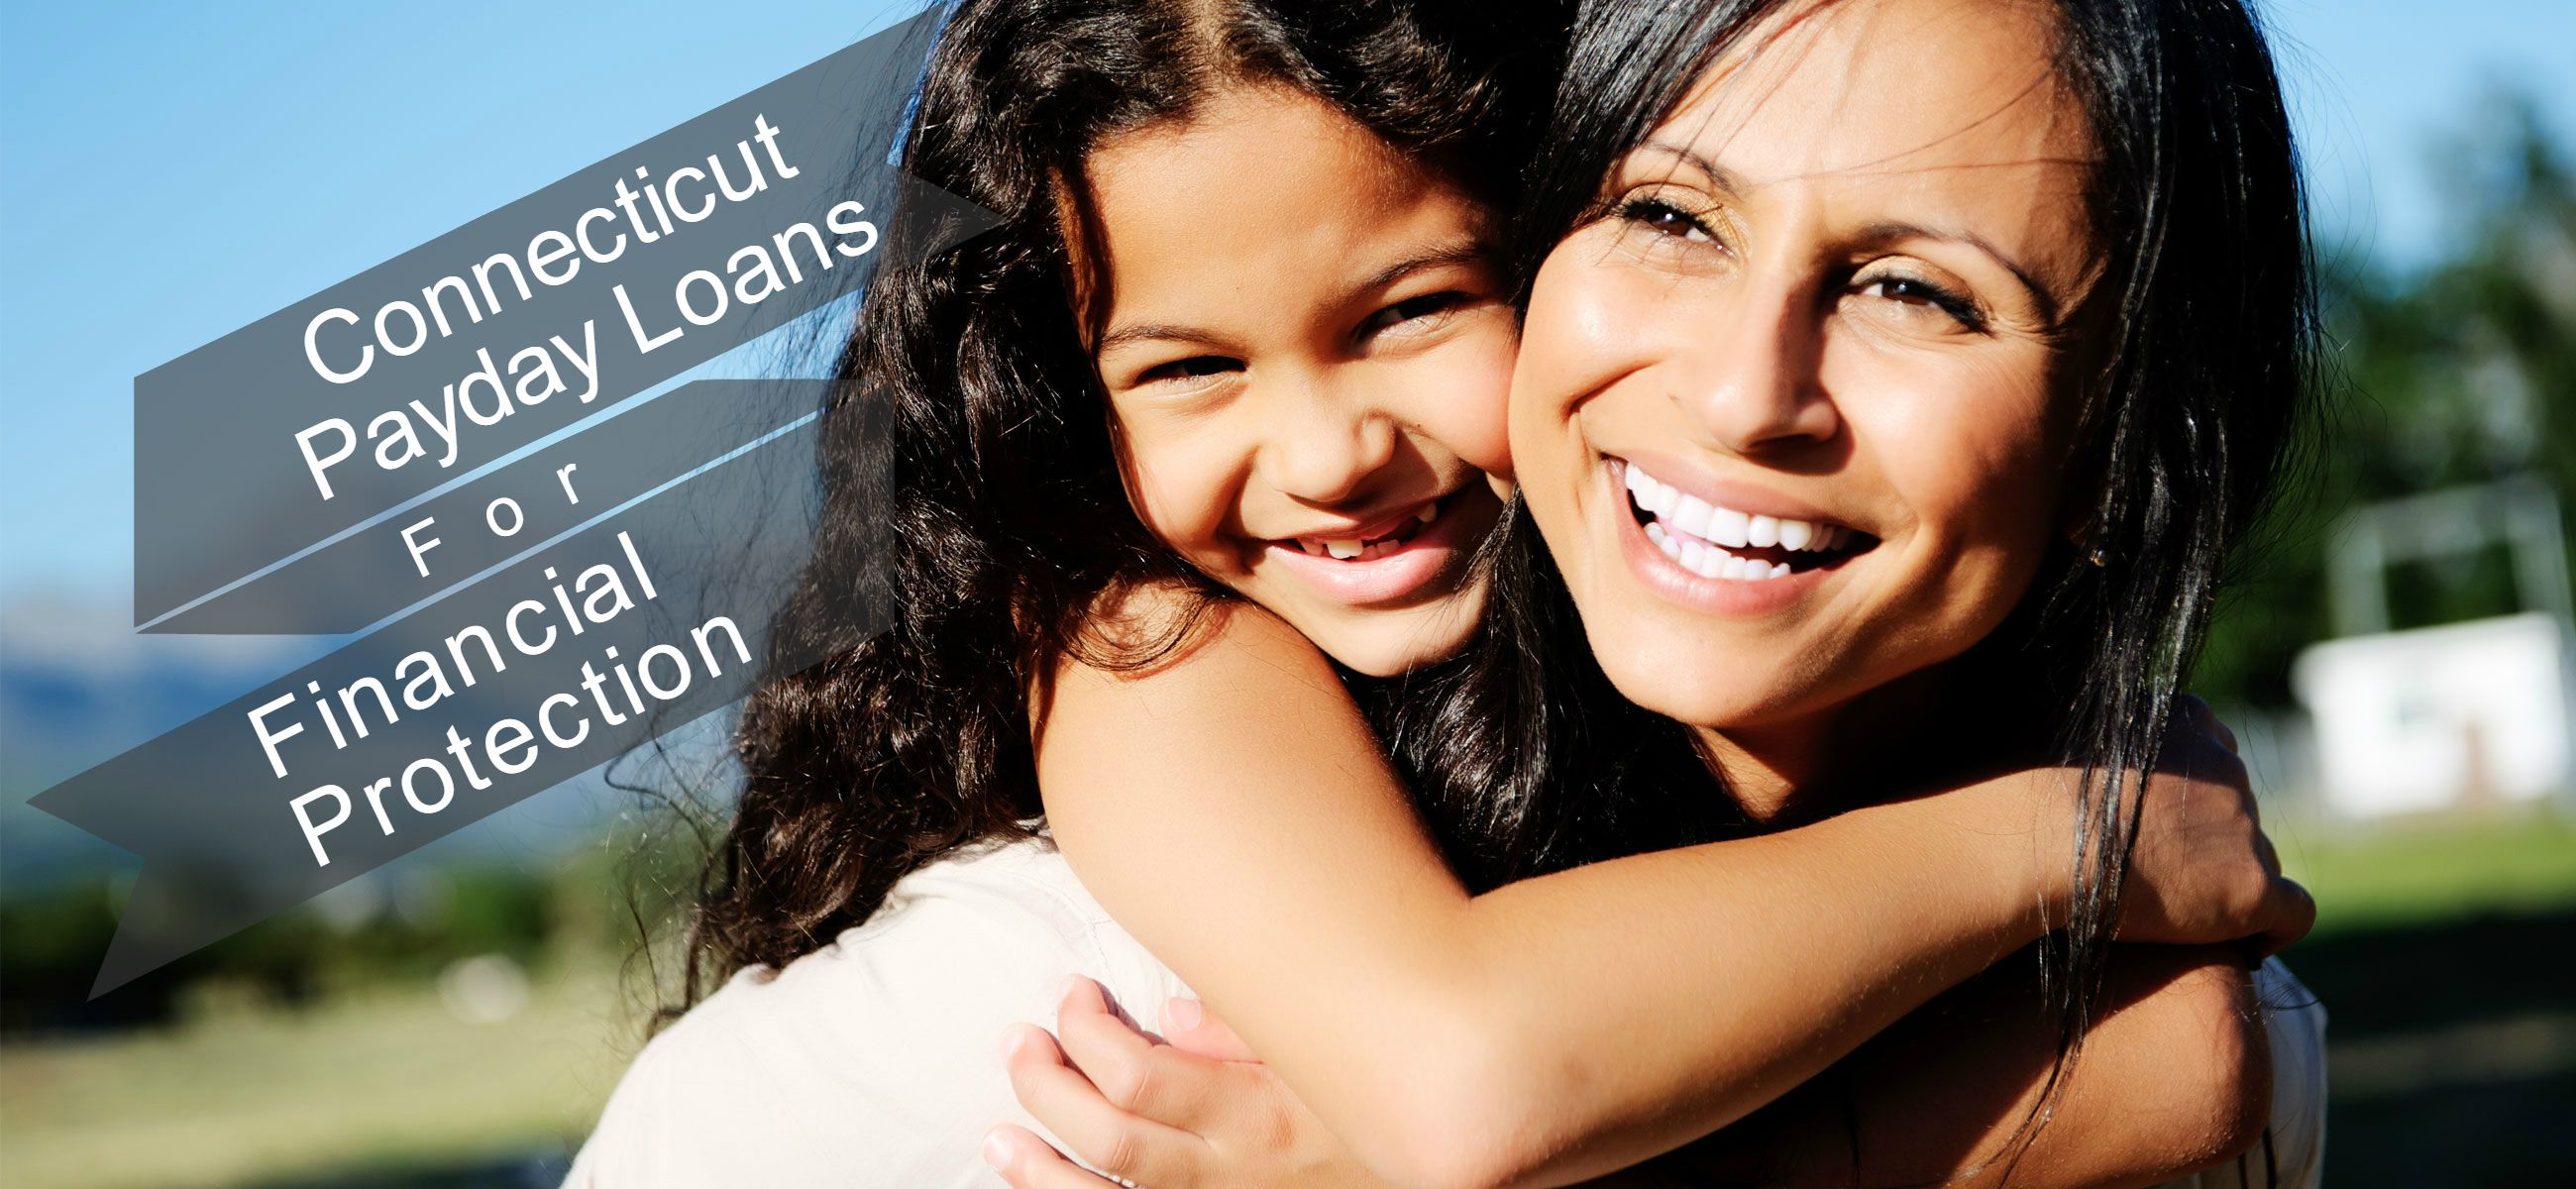 Payday loans kingston ontario picture 4